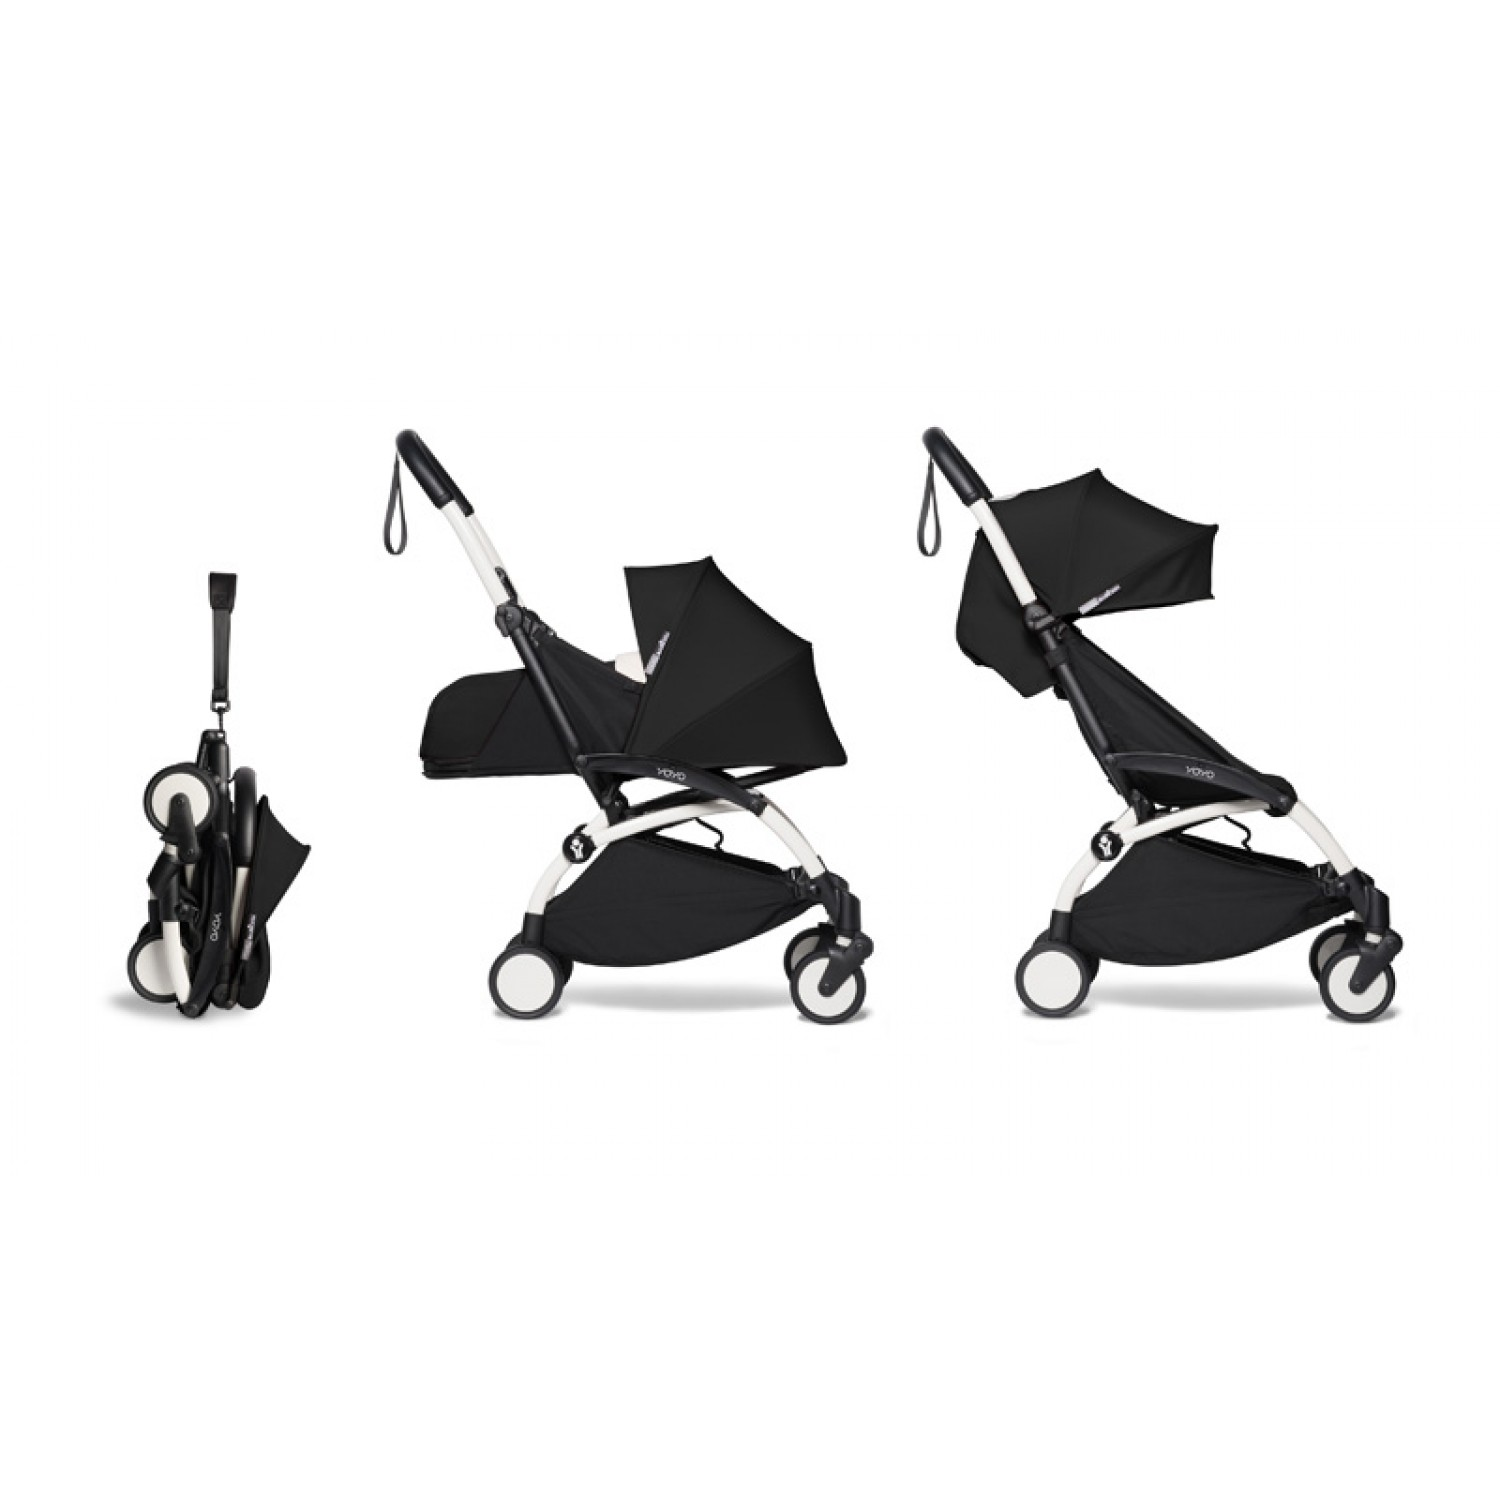 Complete BABYZEN stroller YOYO2  0+ and 6+ | White Chassis Black